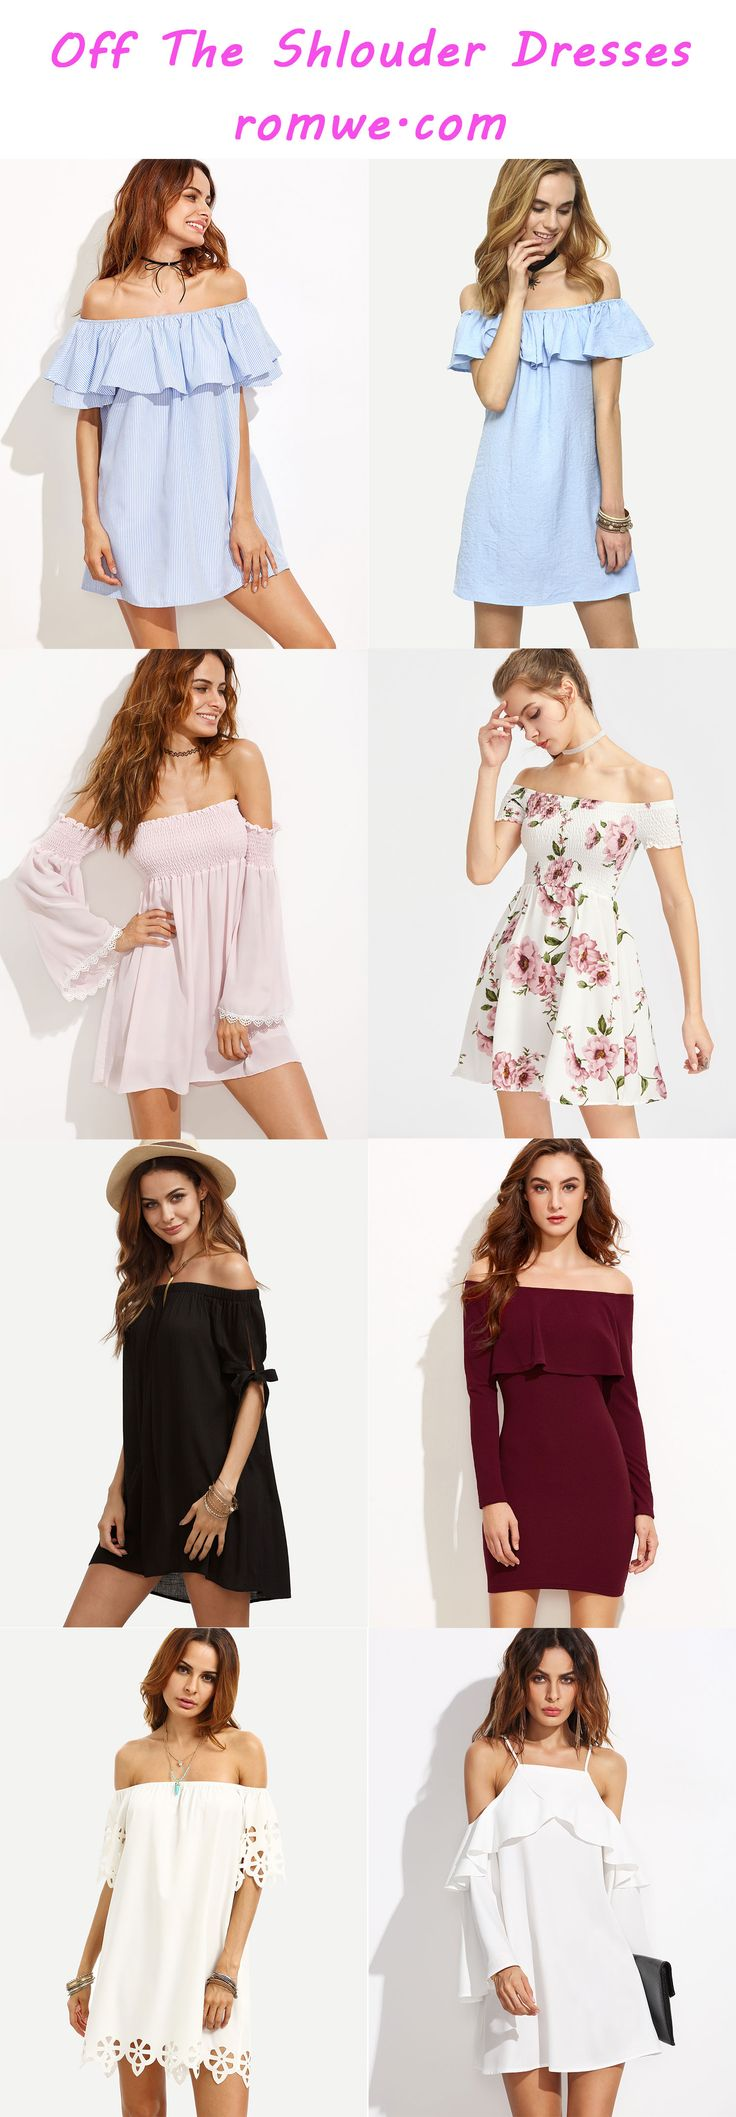 Off the Shoulder Dresses Collection 2017 - romwe.com